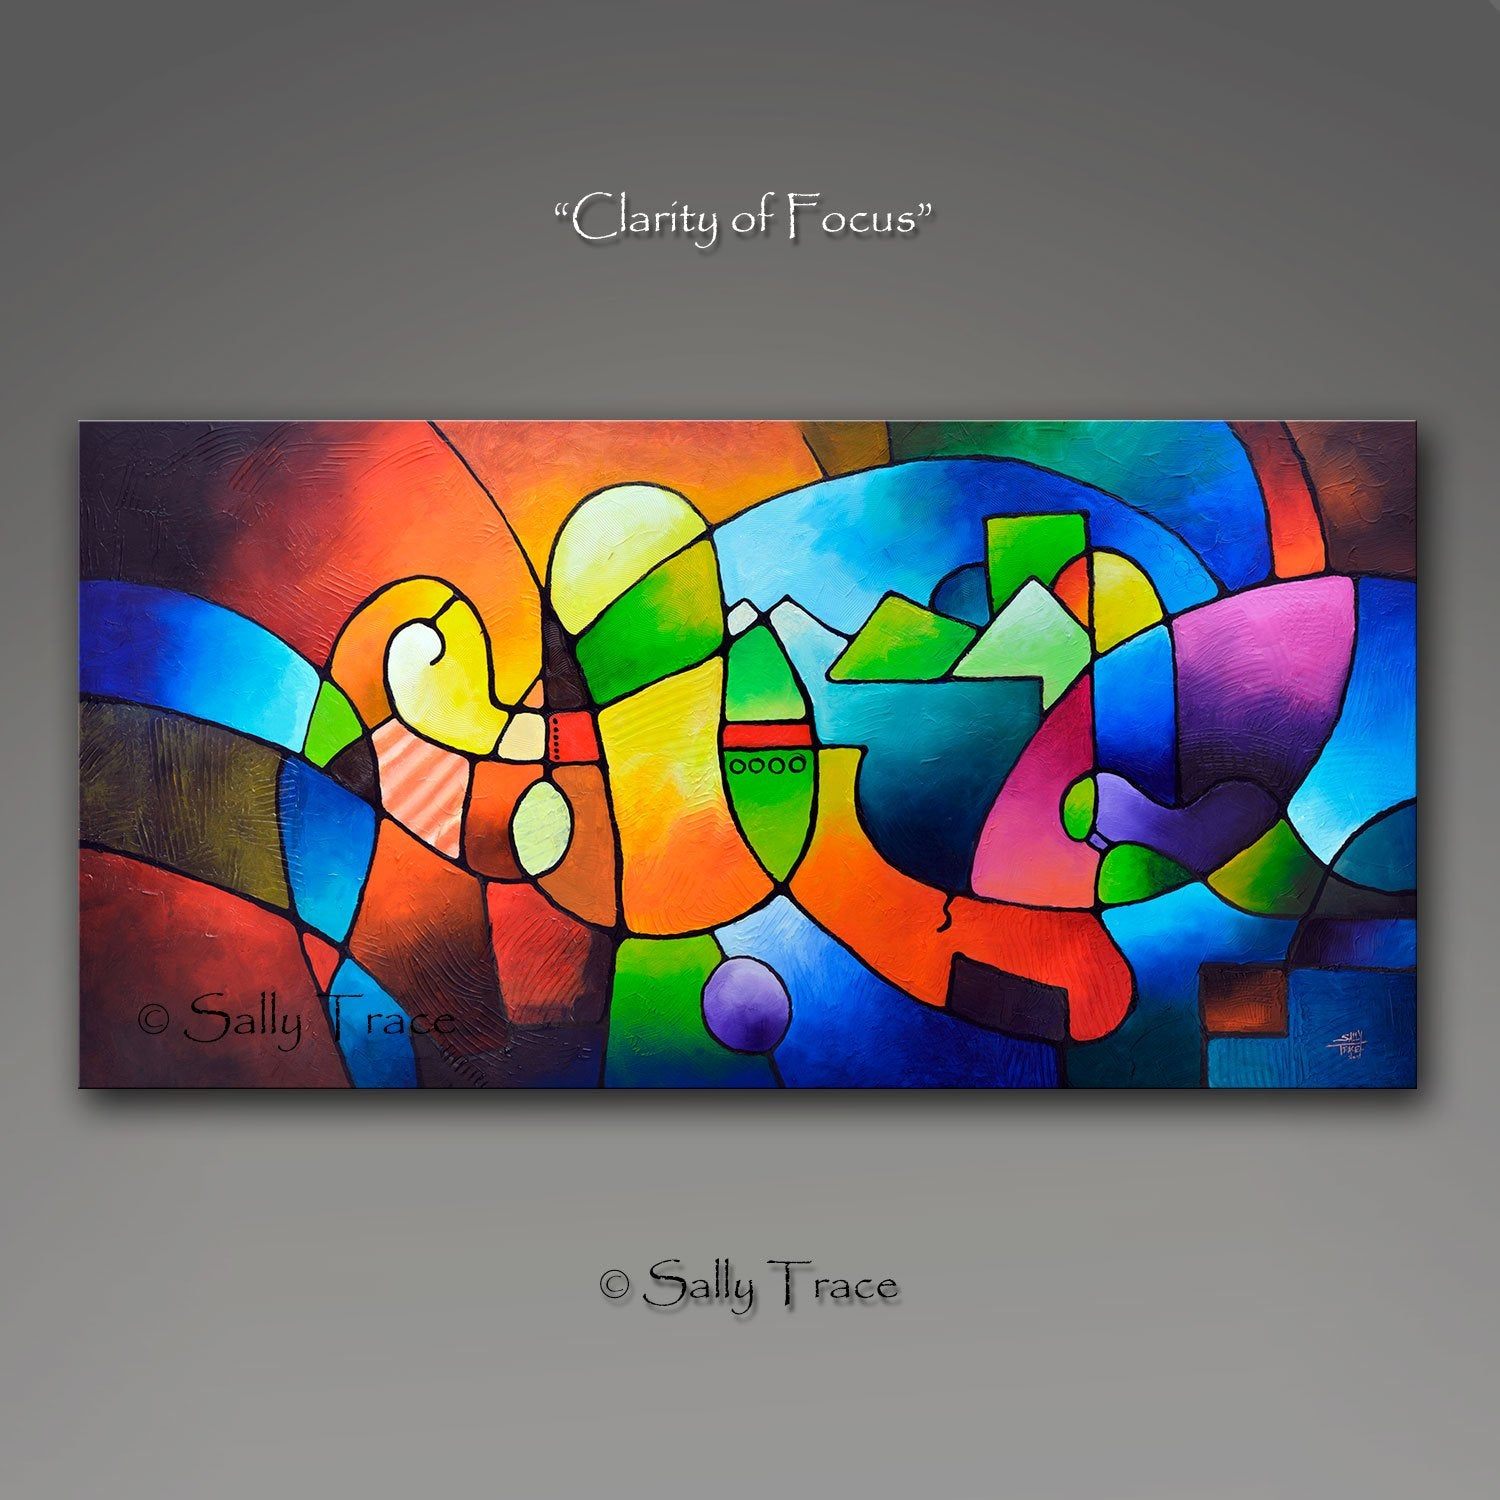 Clarity of Focus abstract painting print by Sally Trace